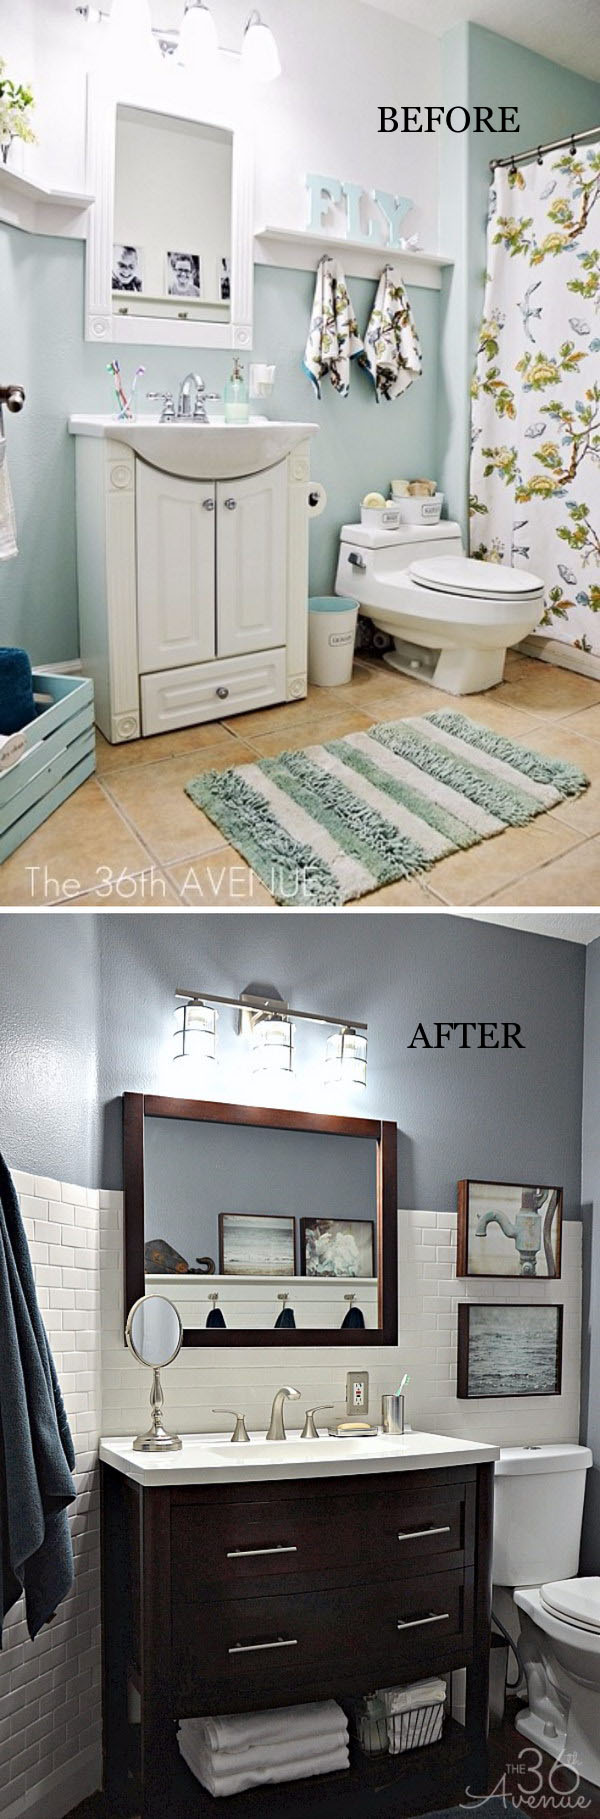 59-bathroom-remodel-before-and-after